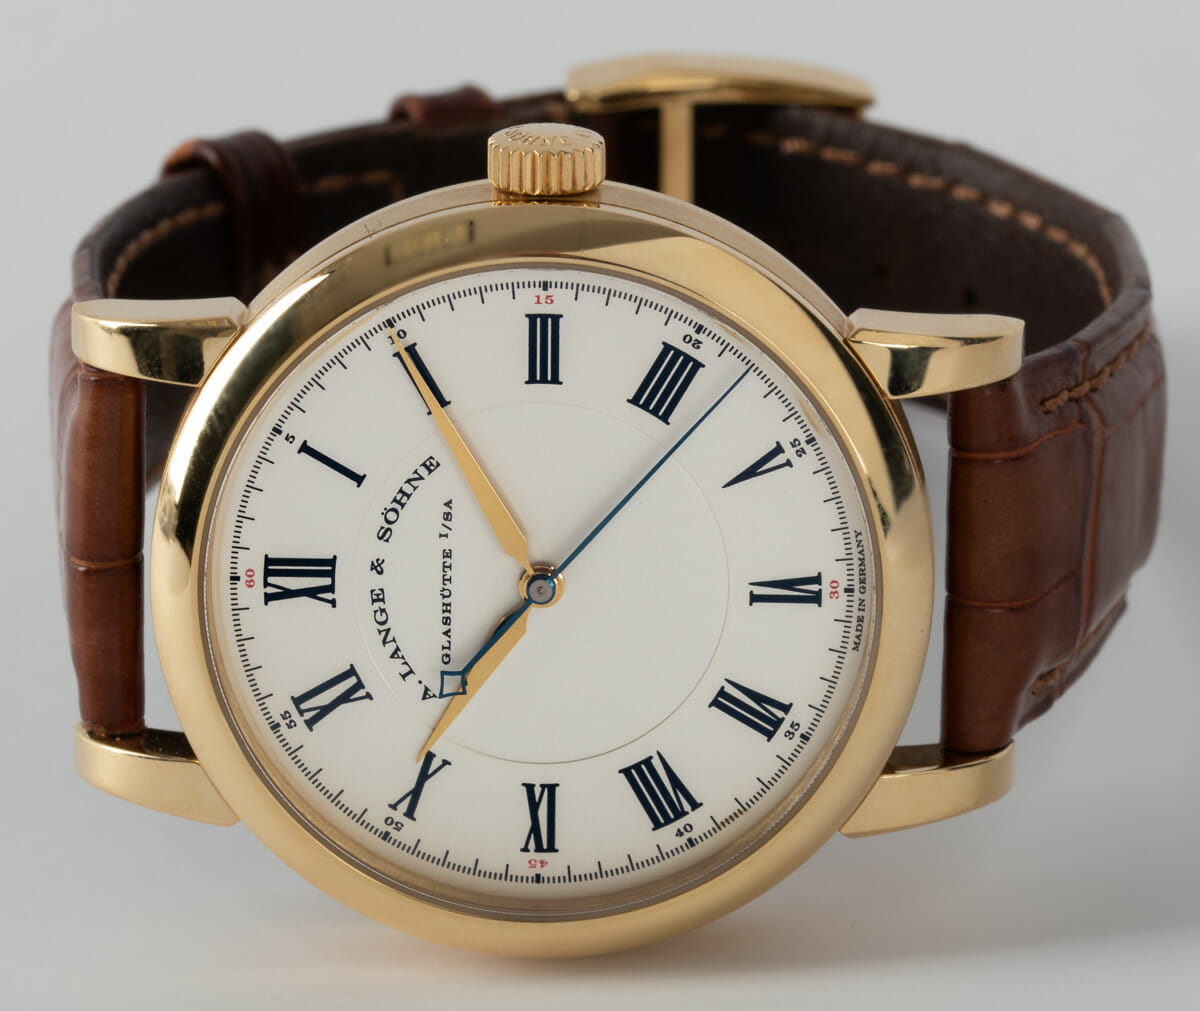 Front View of The Richard Lange